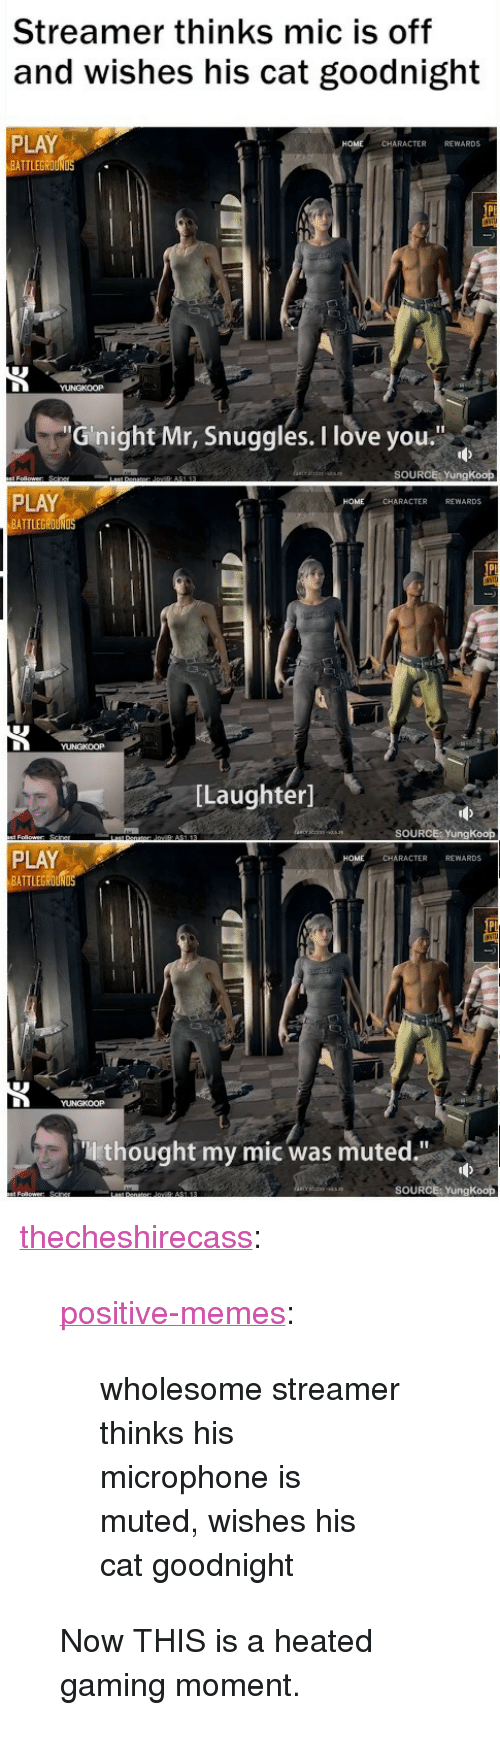 """Love, Memes, and Tumblr: Streamer thinks mic is off  and wishes his cat goodnight  PLAY  ATTLEGROUN  CHARACTER REWARDS  Ginight Mr, Snuggles. I love you  SOURCE: YungKoop  PLAY  BATTLEGROUND  CHARACTER REWARDS  [Laughter]  SOURCE: YungKoop  PLAY  BATTLEG  HOME  CHARACTER REWARDS  thought my mic was muted.""""  SOURCE: YungKoop <p><a href=""""https://thecheshirecass.tumblr.com/post/165465665312/positive-memes-wholesome-streamer-thinks-his"""" class=""""tumblr_blog"""">thecheshirecass</a>:</p> <blockquote> <p><a href=""""https://positive-memes.tumblr.com/post/165007172445/wholesome-streamer-thinks-his-microphone-is-muted"""" class=""""tumblr_blog"""">positive-memes</a>:</p> <blockquote><p>wholesome streamer thinks his microphone is muted, wishes his cat goodnight</p></blockquote>  <p>Now THIS is a heated gaming moment.</p> </blockquote>"""